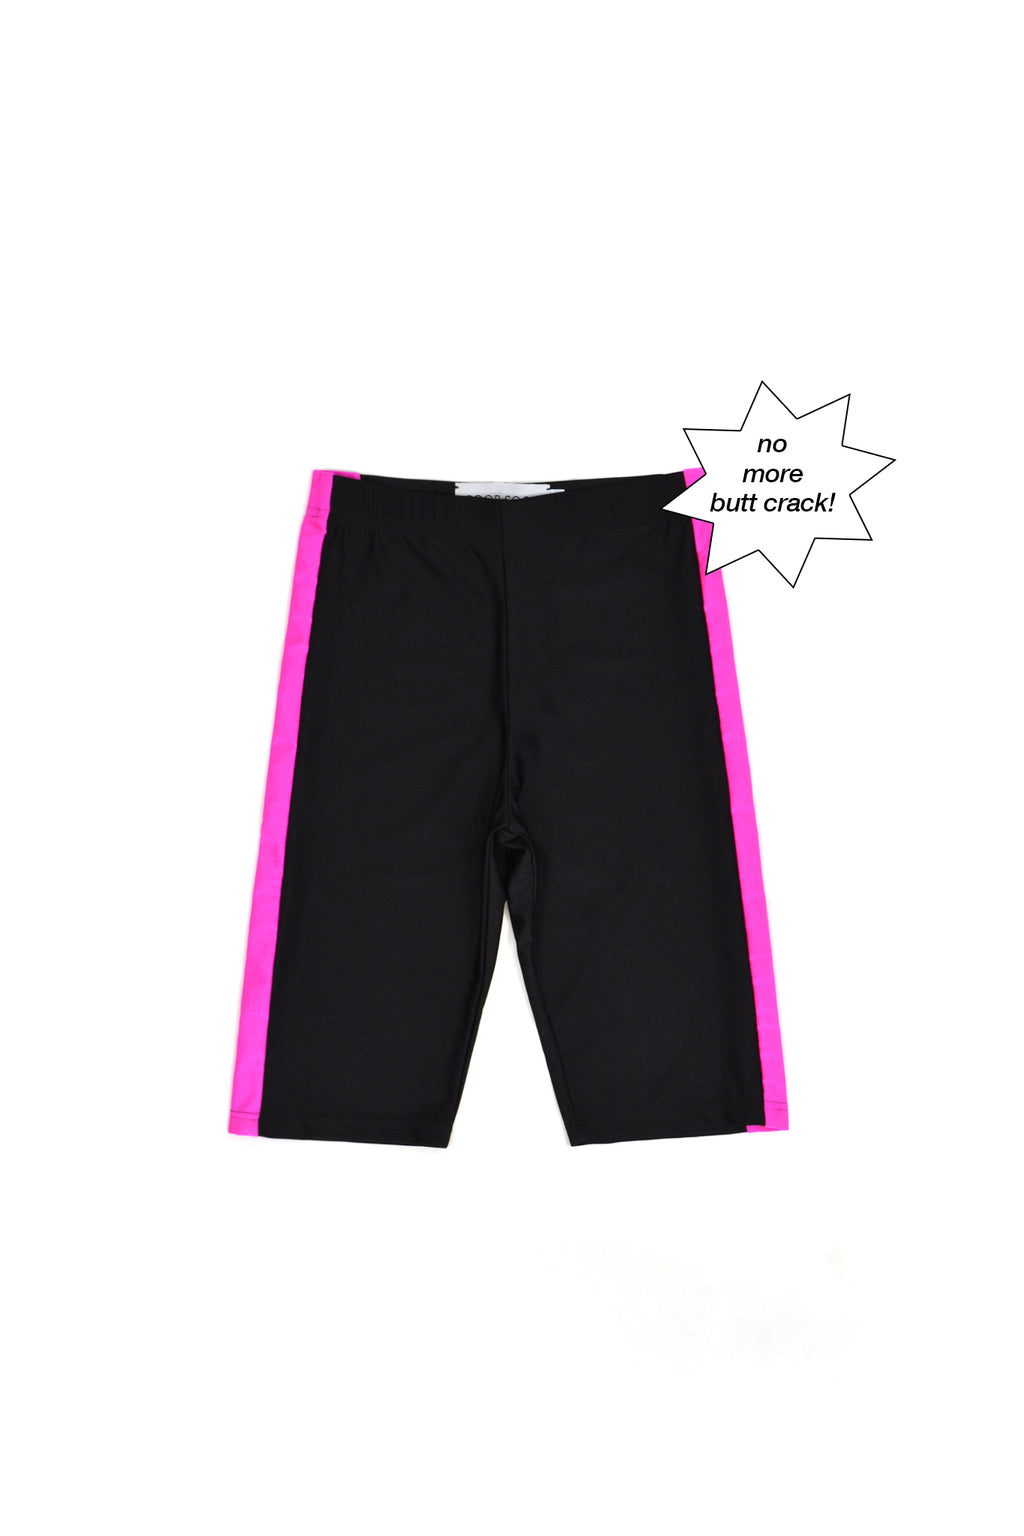 SOOP SOOP Bicycle Shorts, Pink Stripe